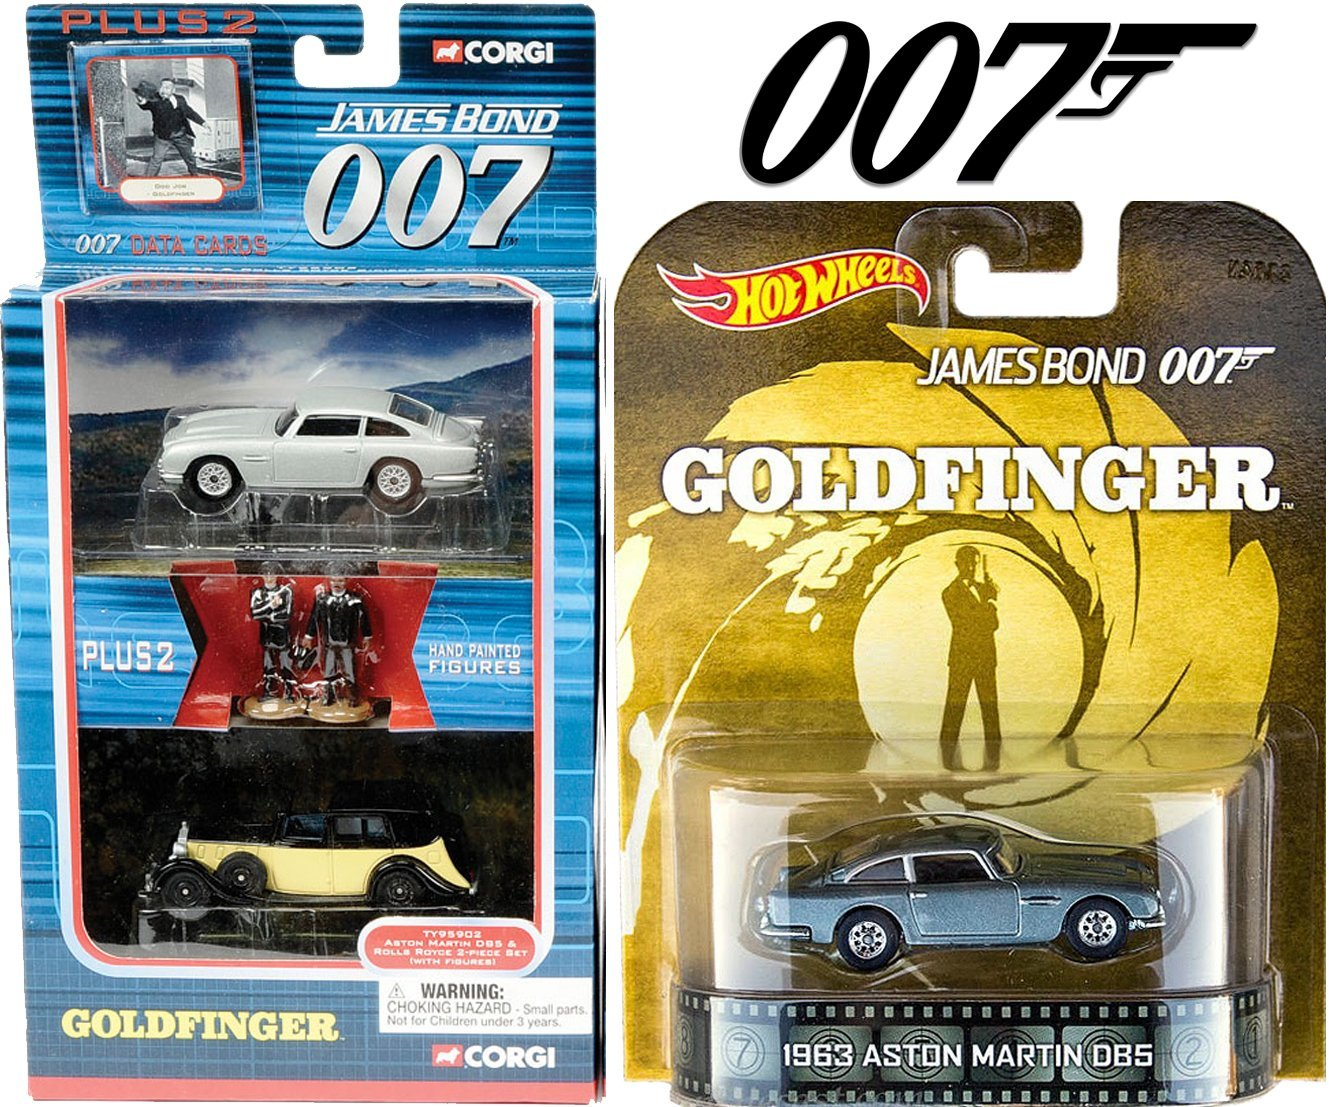 Aston Martin Hot Wheels Retro Entertainment Goldfinger & 007 James Bond Corgi Car Set